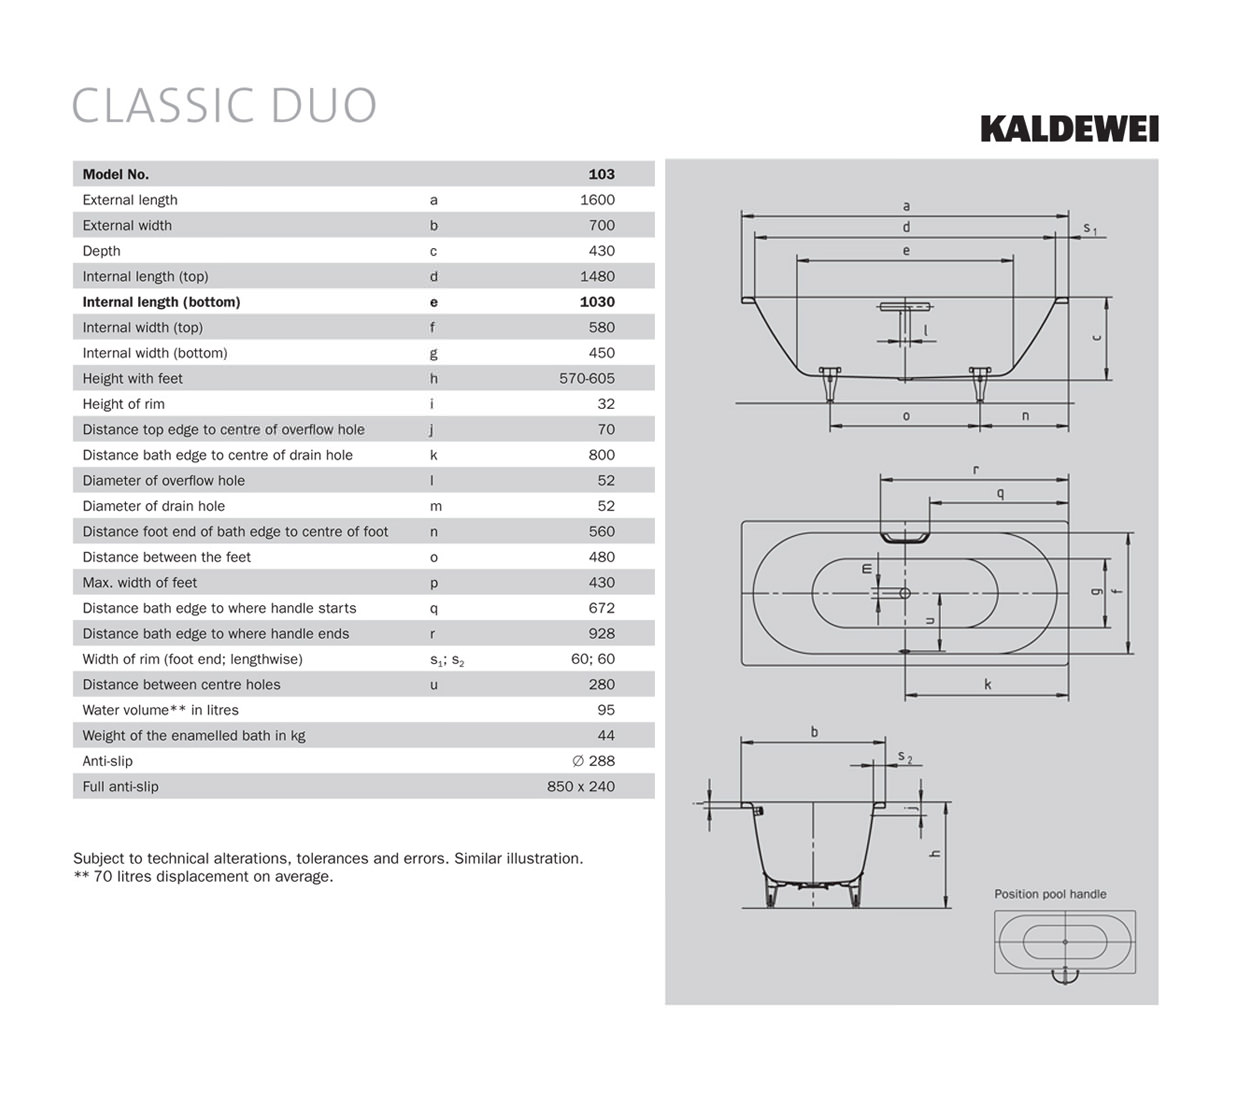 Kaldewei Classic Duo 20 Double Ended Steel Bath 20 x 20mm